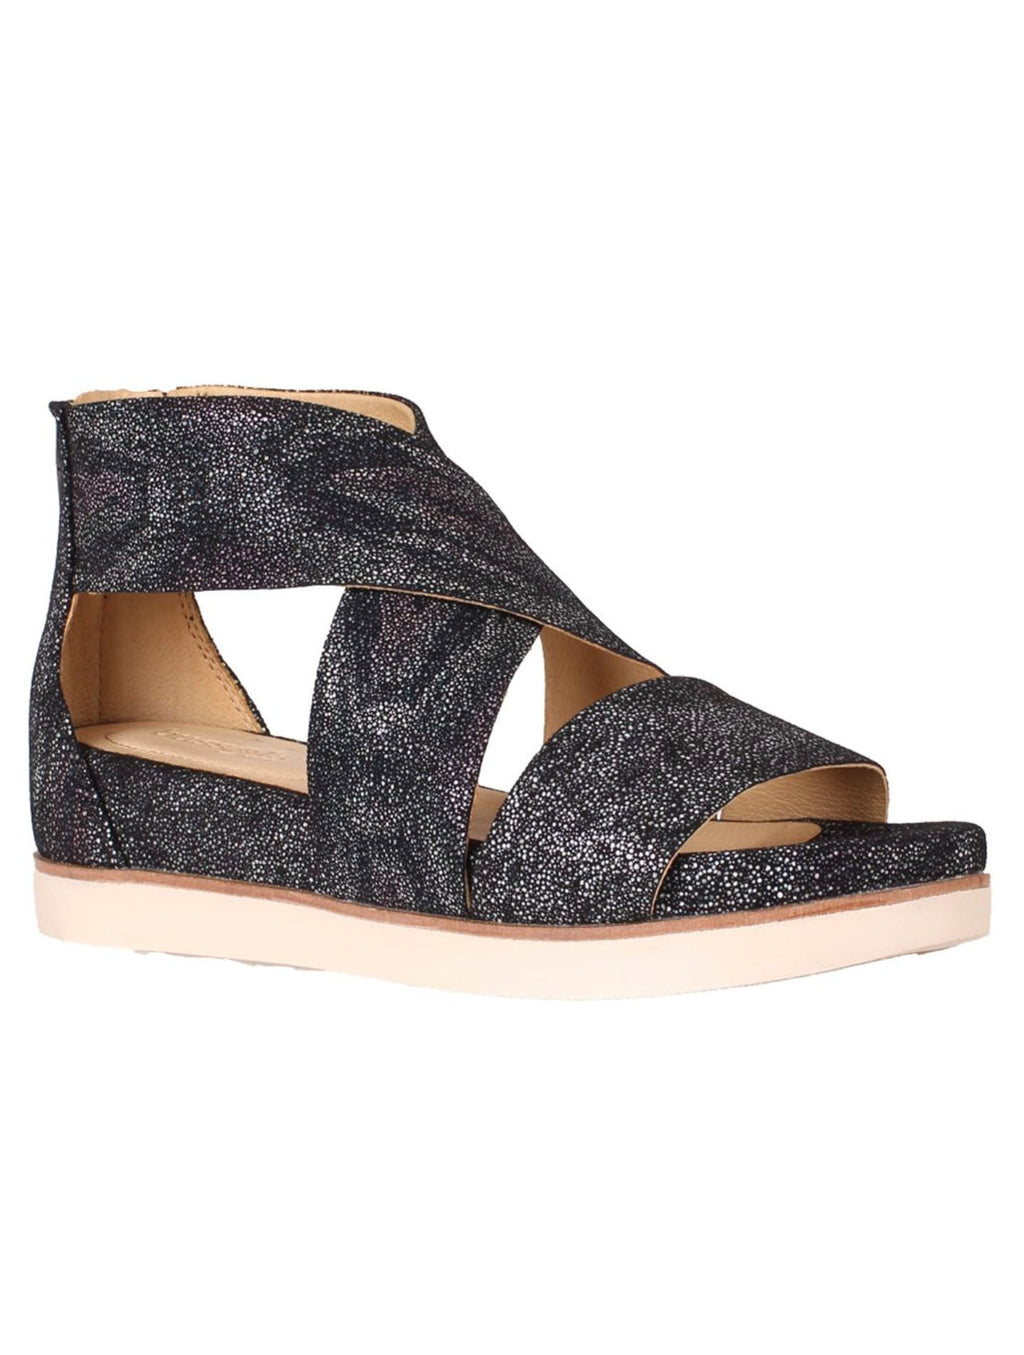 Bussola Phebe Sandal in Black